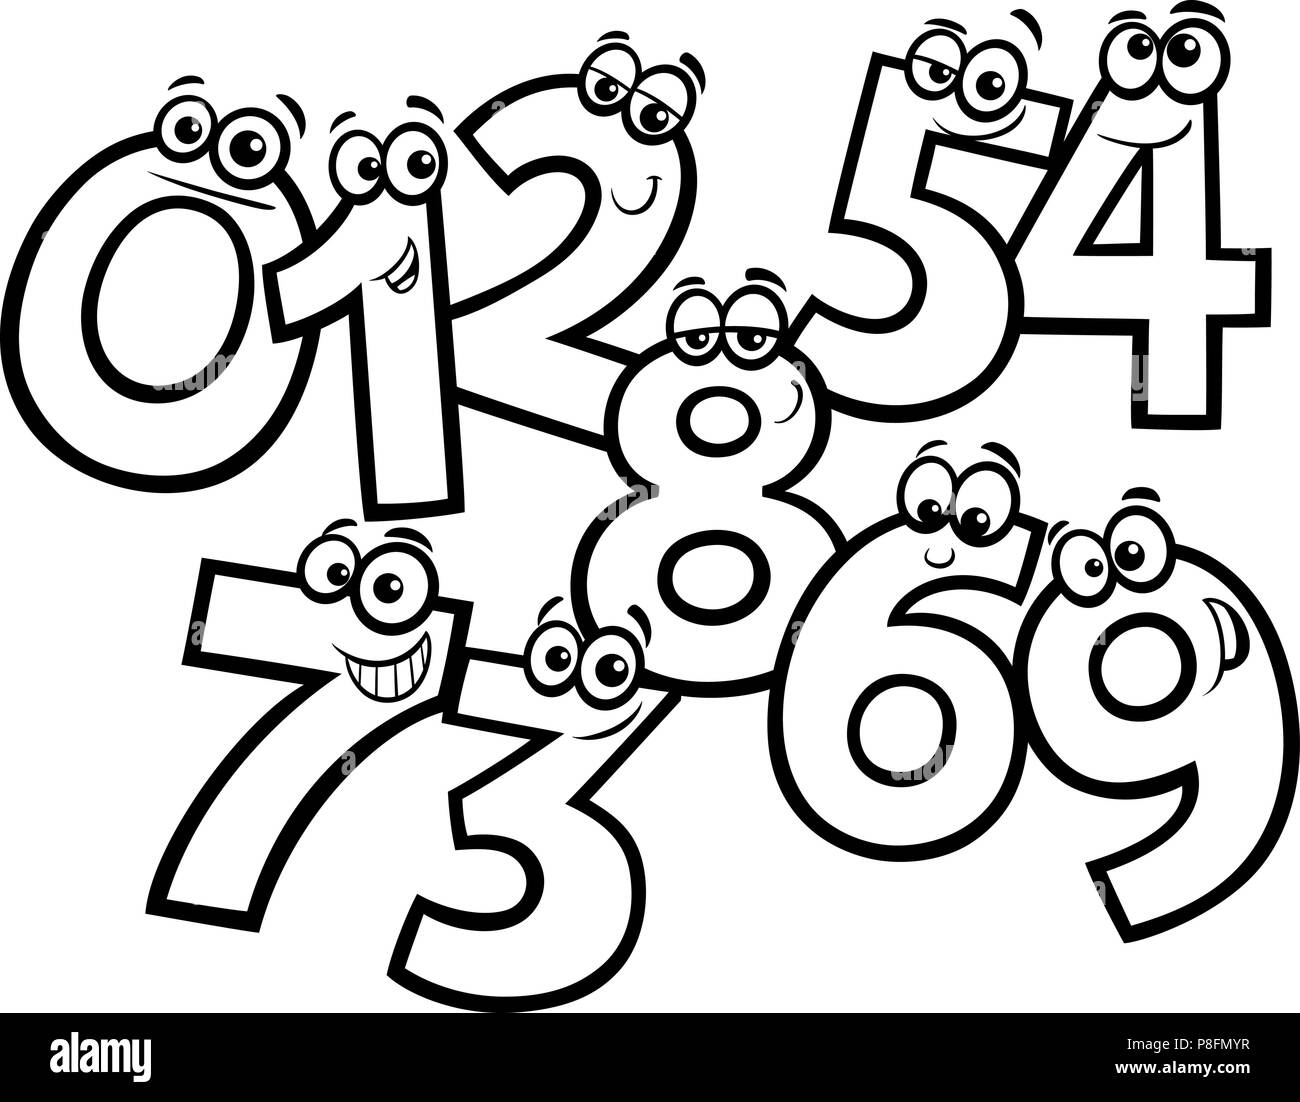 Black And White Educational Cartoon Illustrations Of Basic Numbers